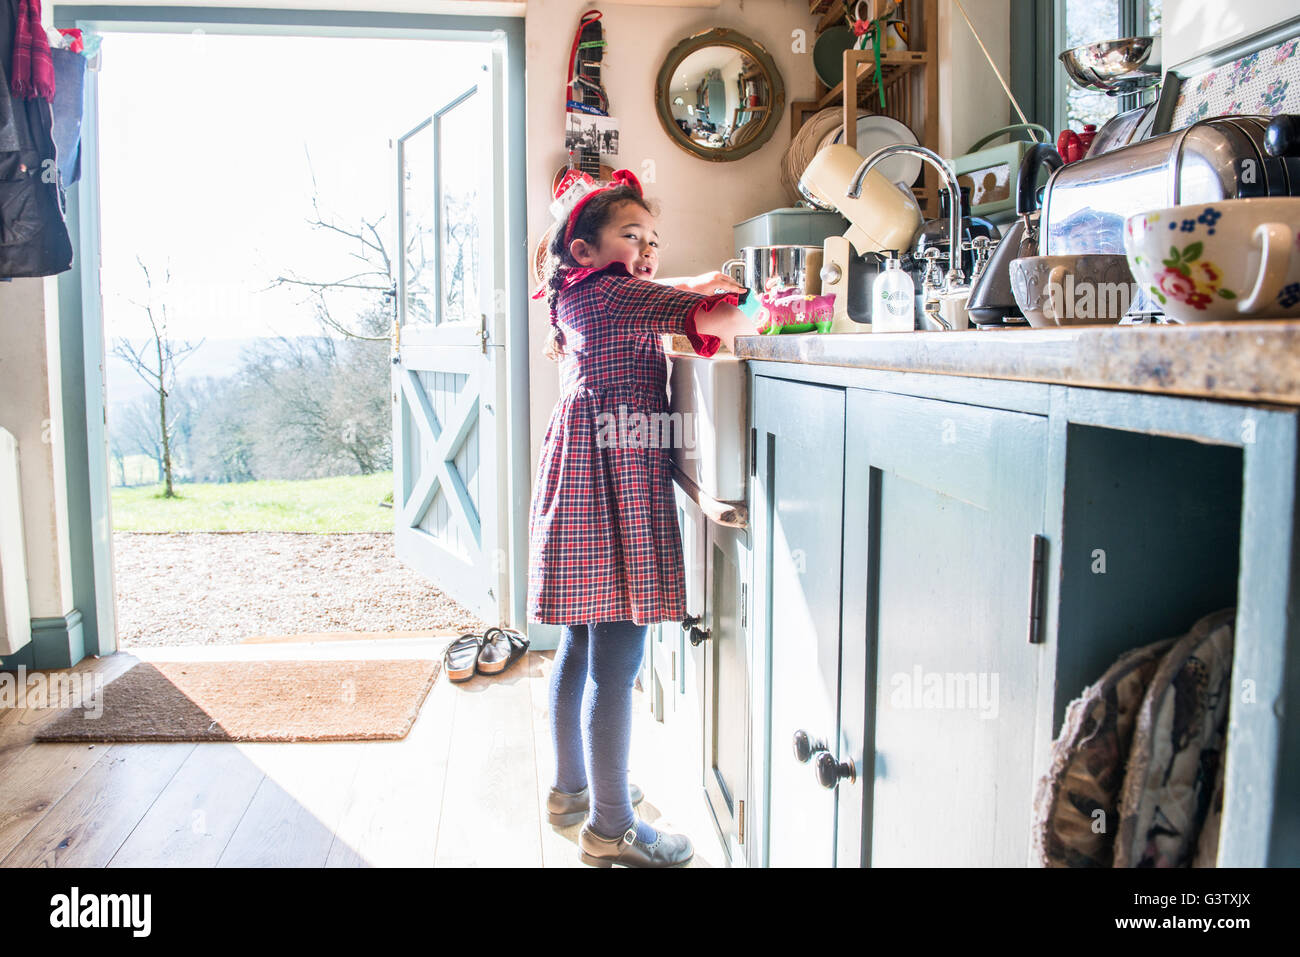 A six year old girl standing washing dishes in a kitchen sink. - Stock Image